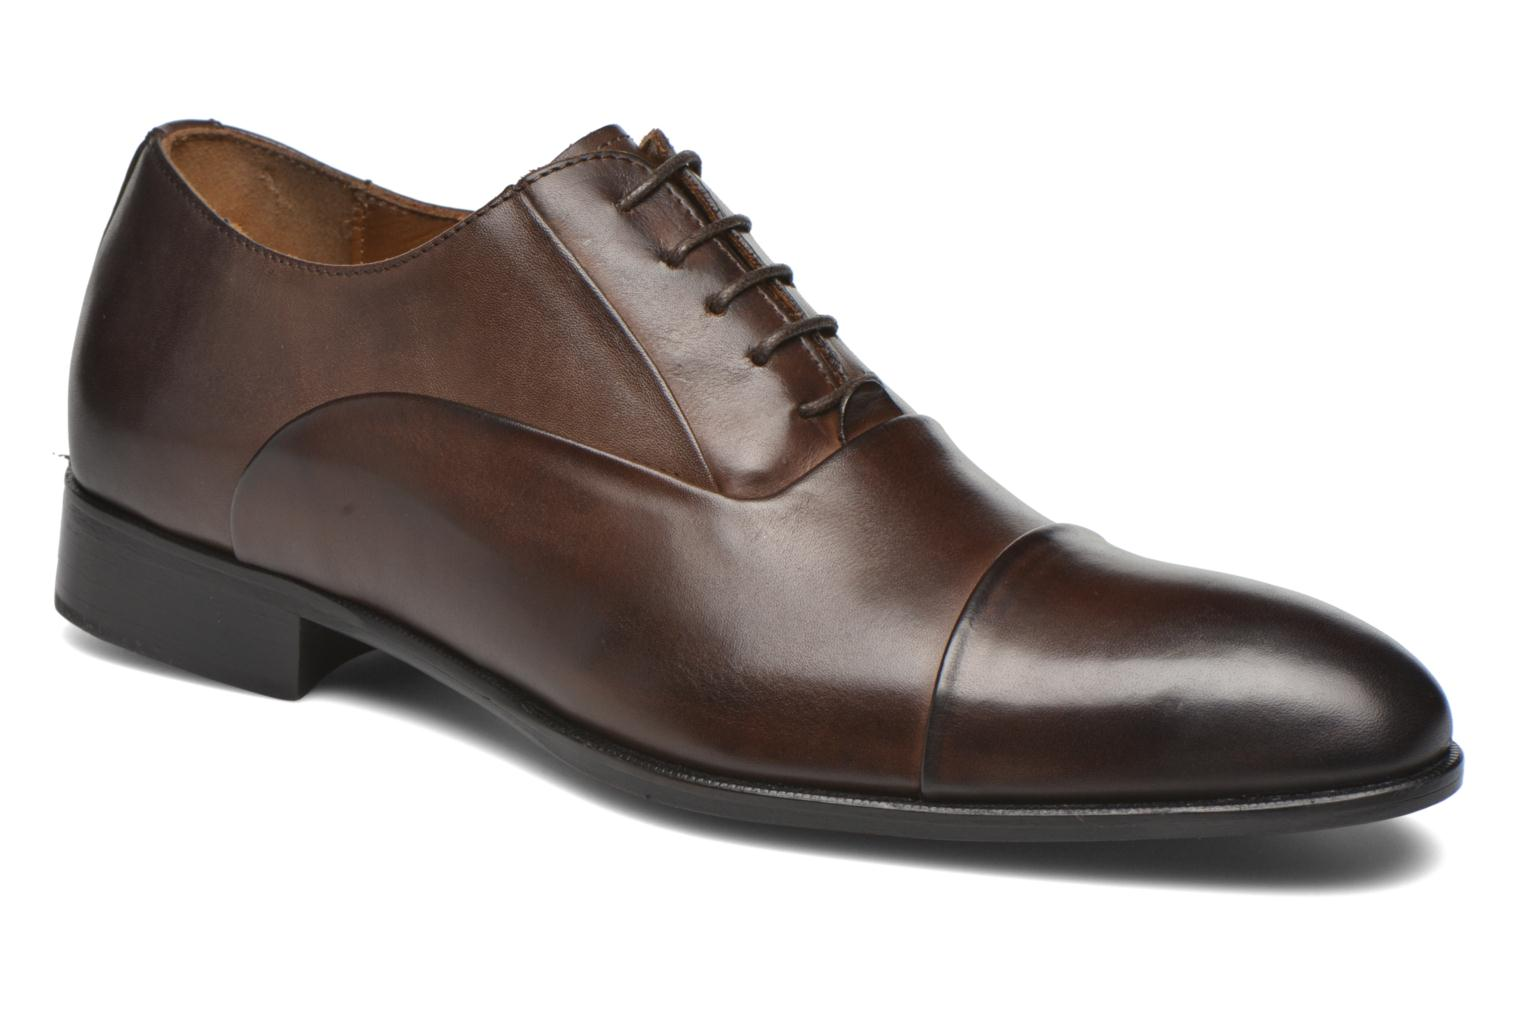 Chaussures à lacets Lloyd noires Casual homme Chaussures Swissies Casual femme tQvQafxi5